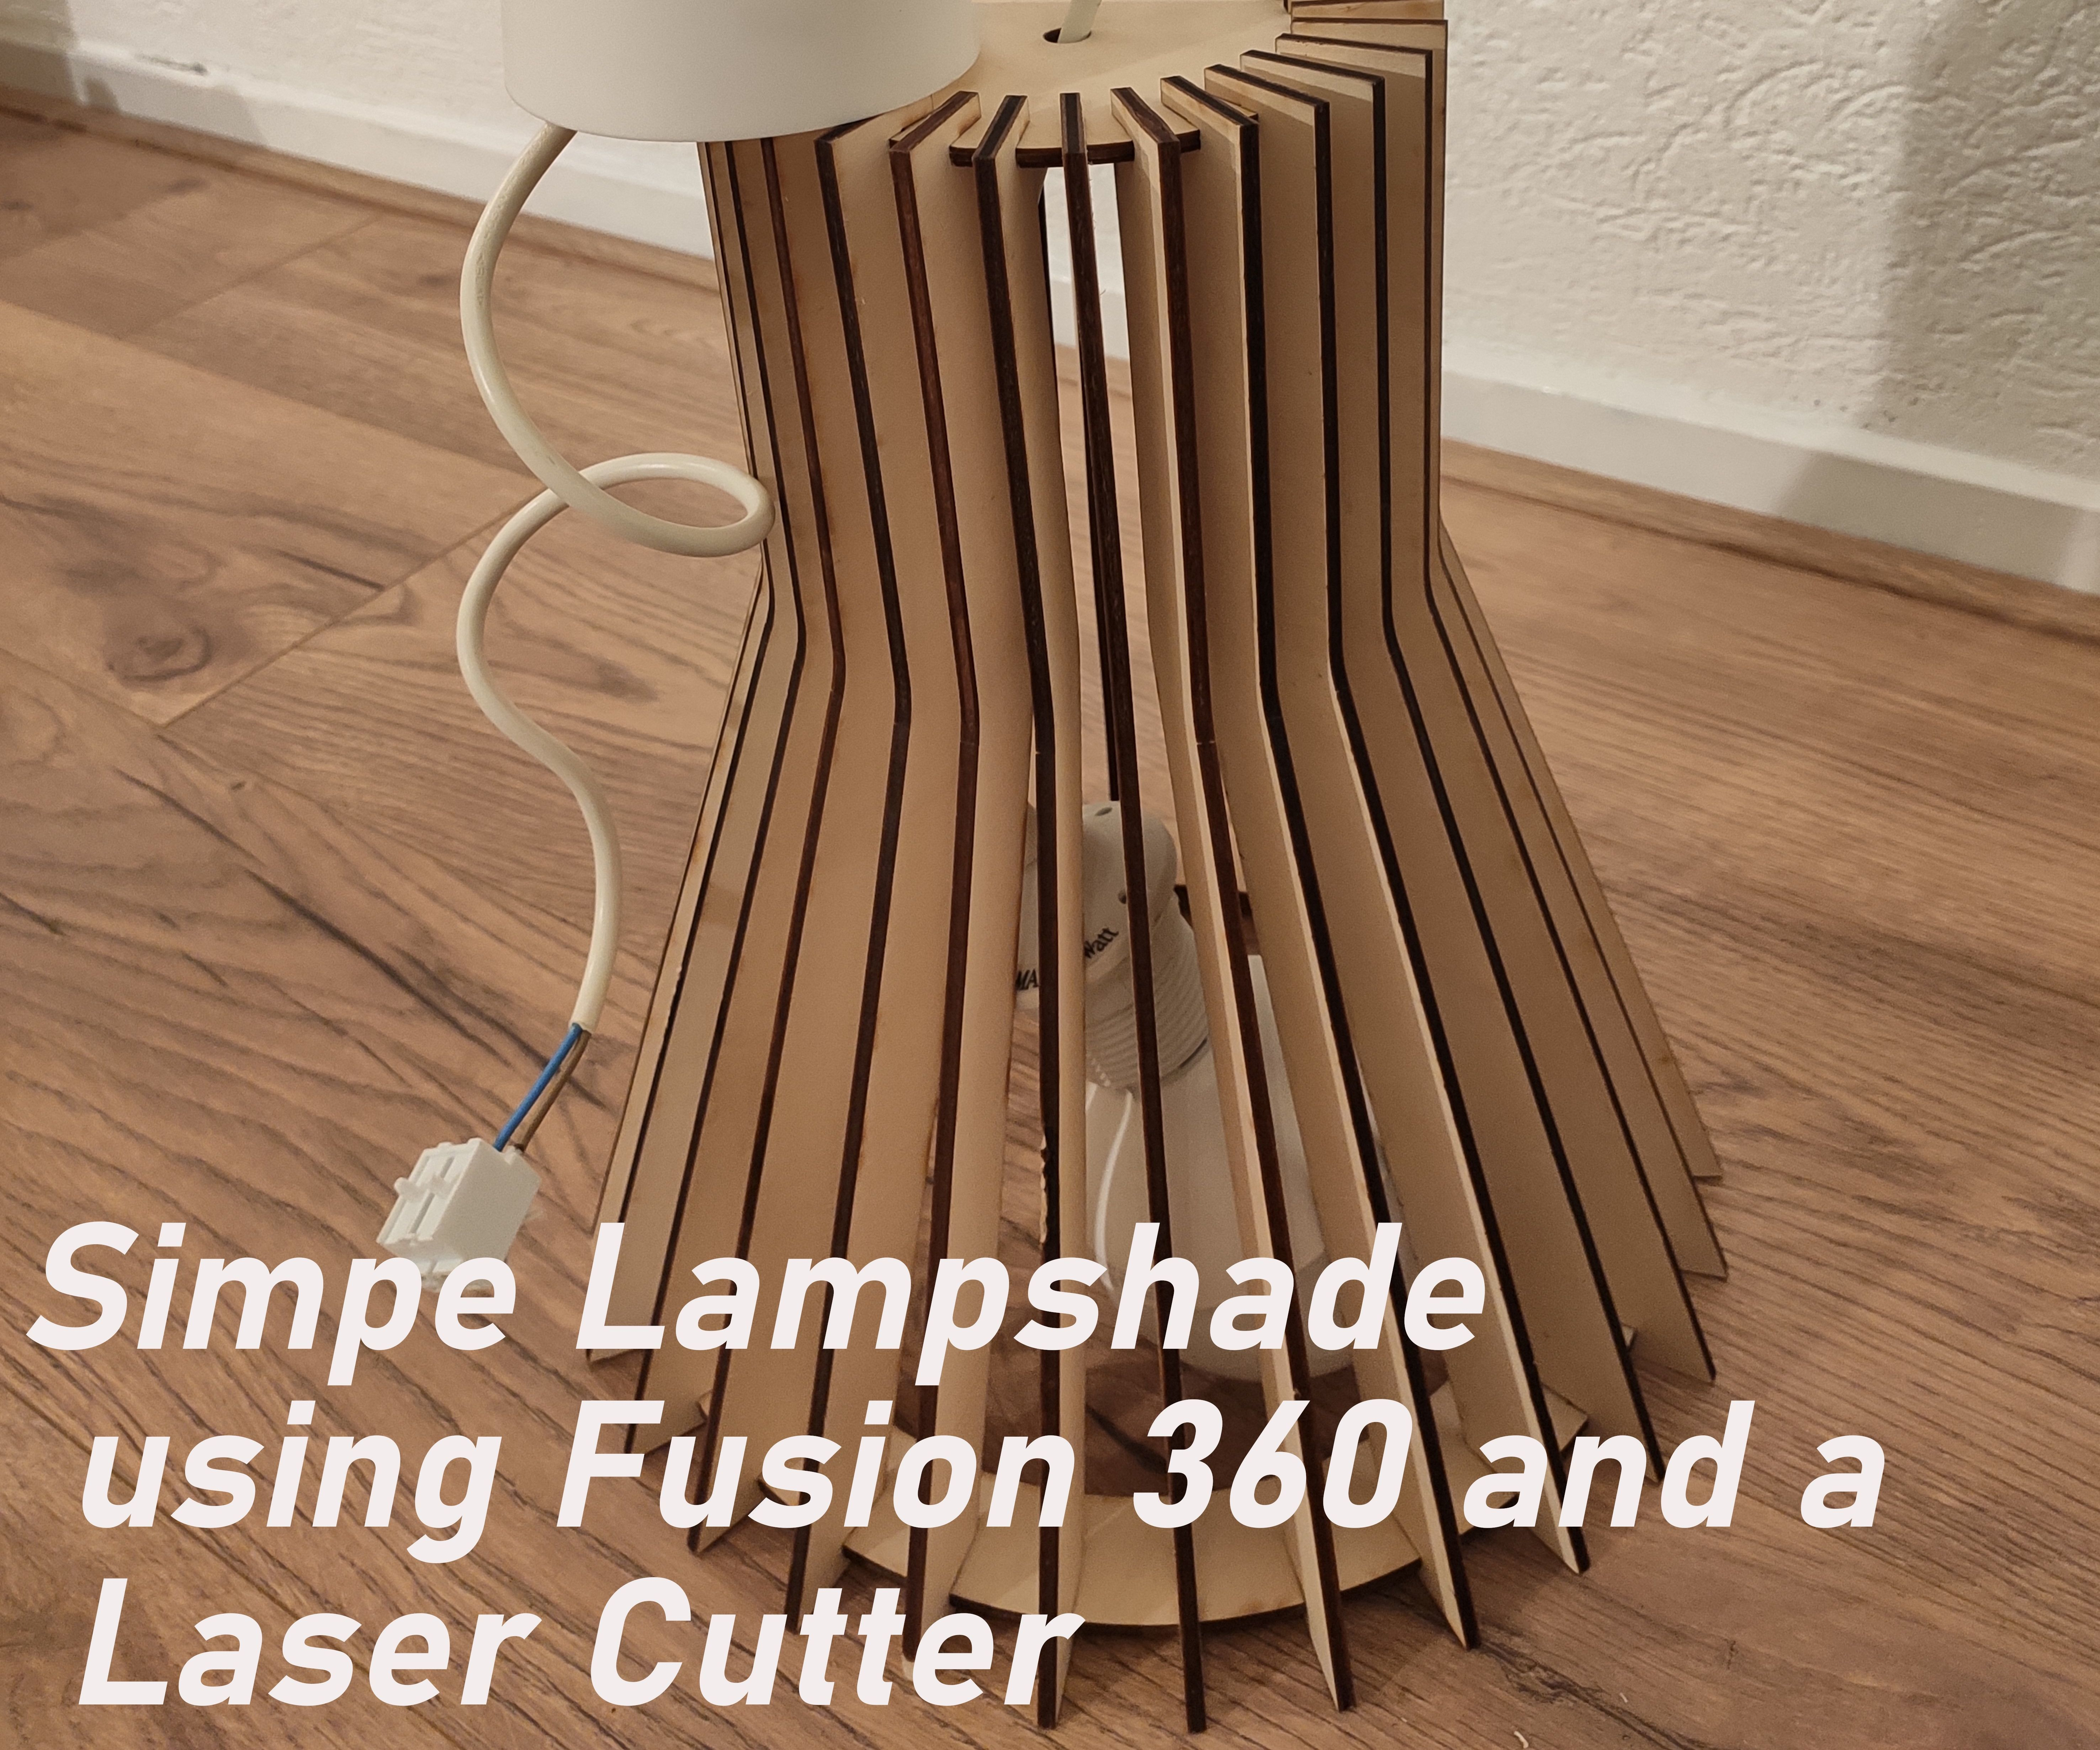 Easy Lampshade Using Fusion360 and a Laser Cutter